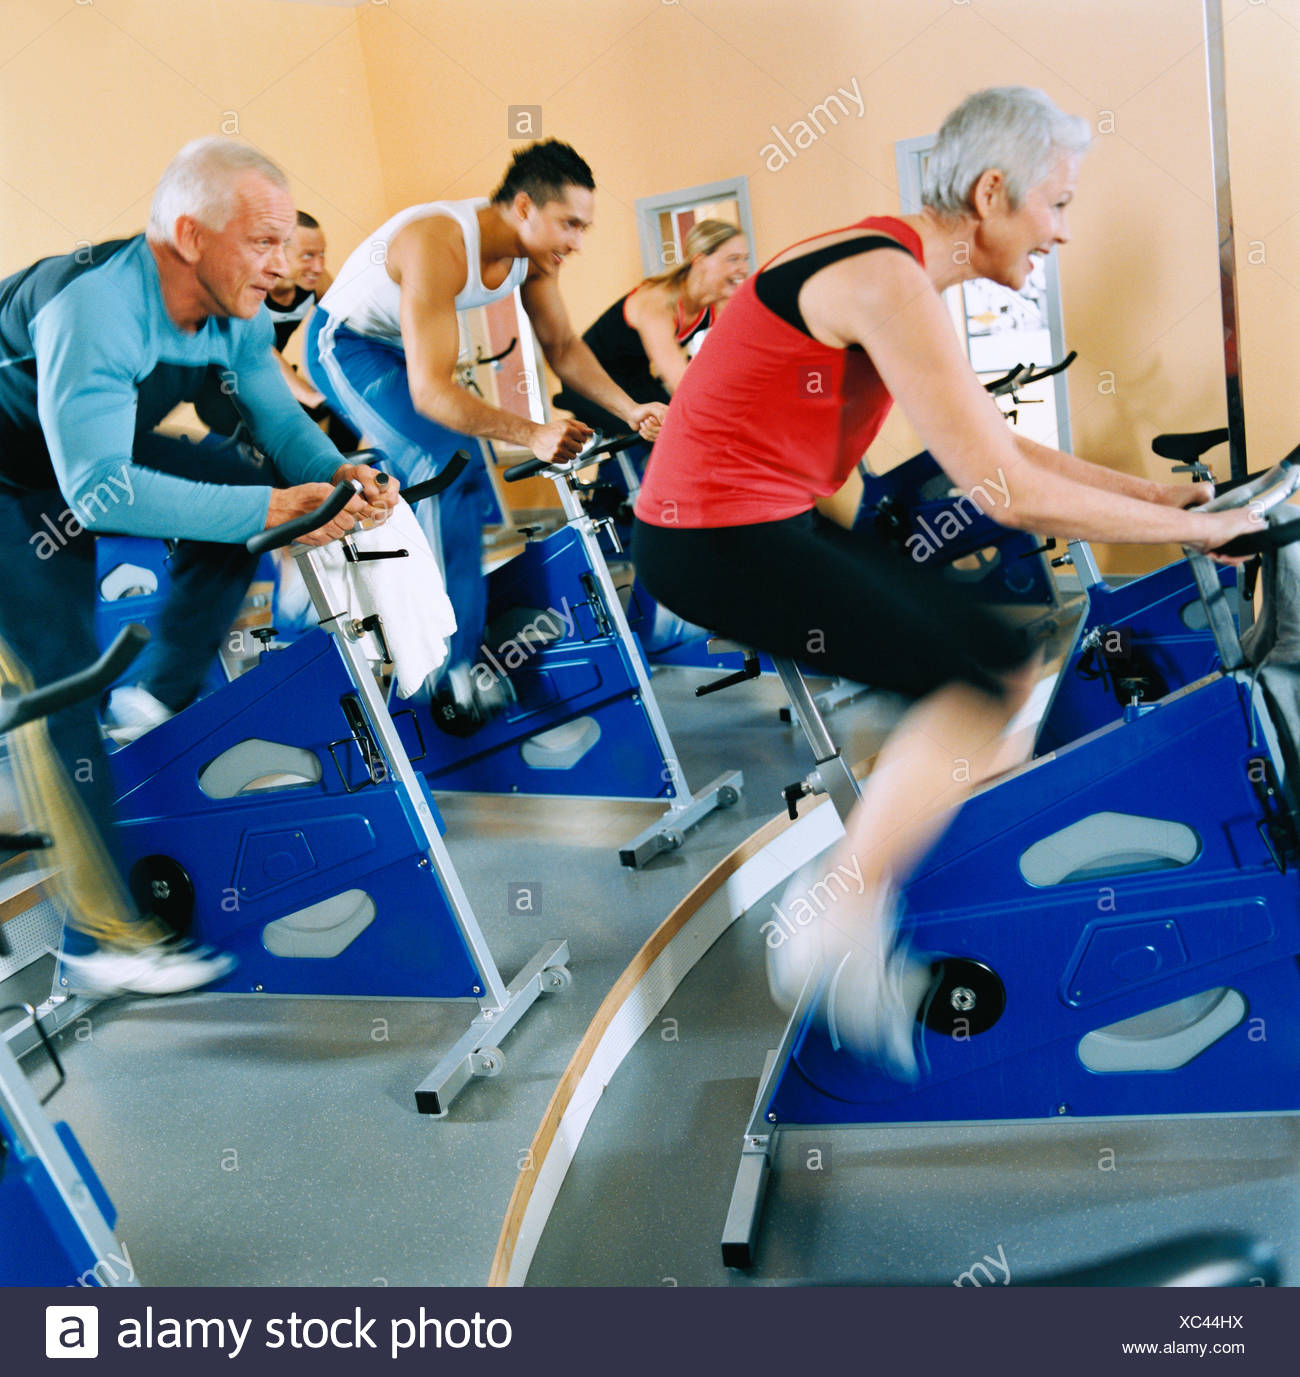 20-24 years 30-34 years activity adults only athlete bicycle bodybuilding color image cycle exercising five people gym health - Stock Image